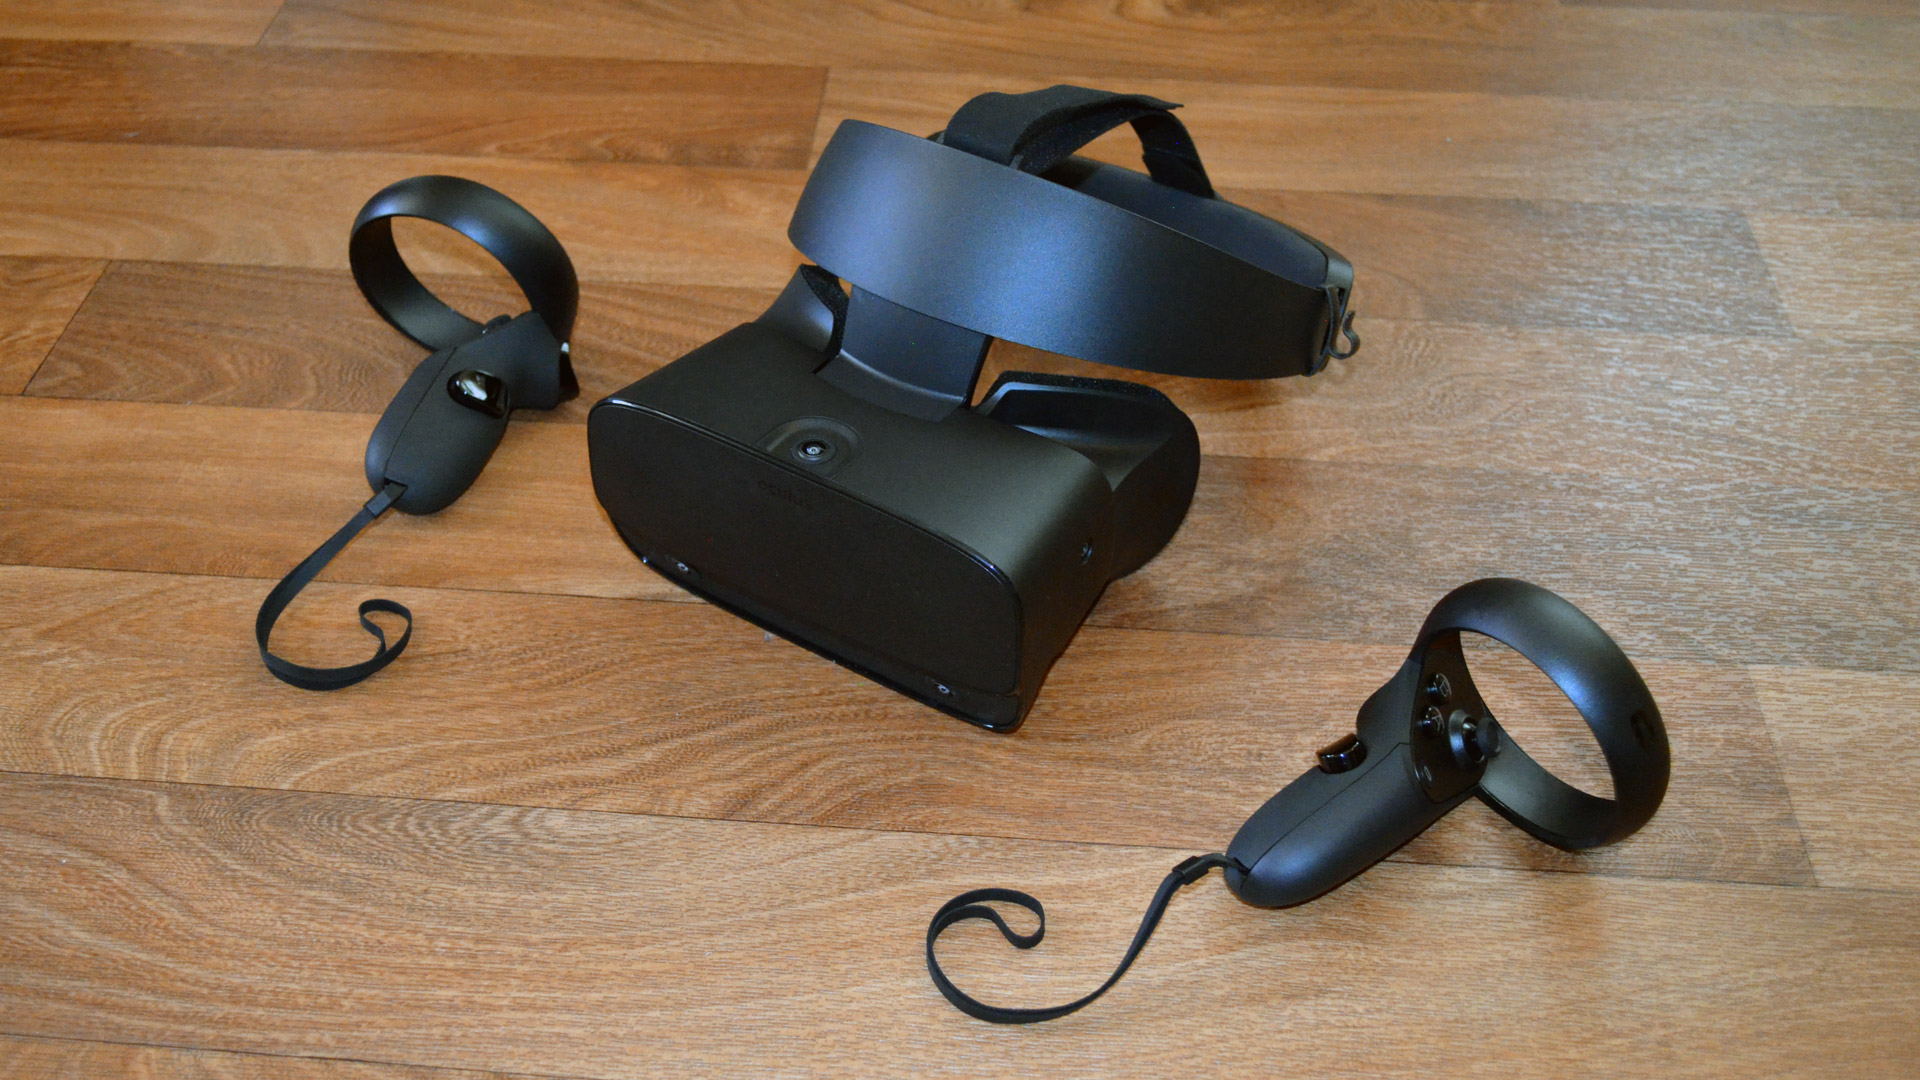 Oculus Rift S Review – A Good Choice for VR Newcomers, a Difficult